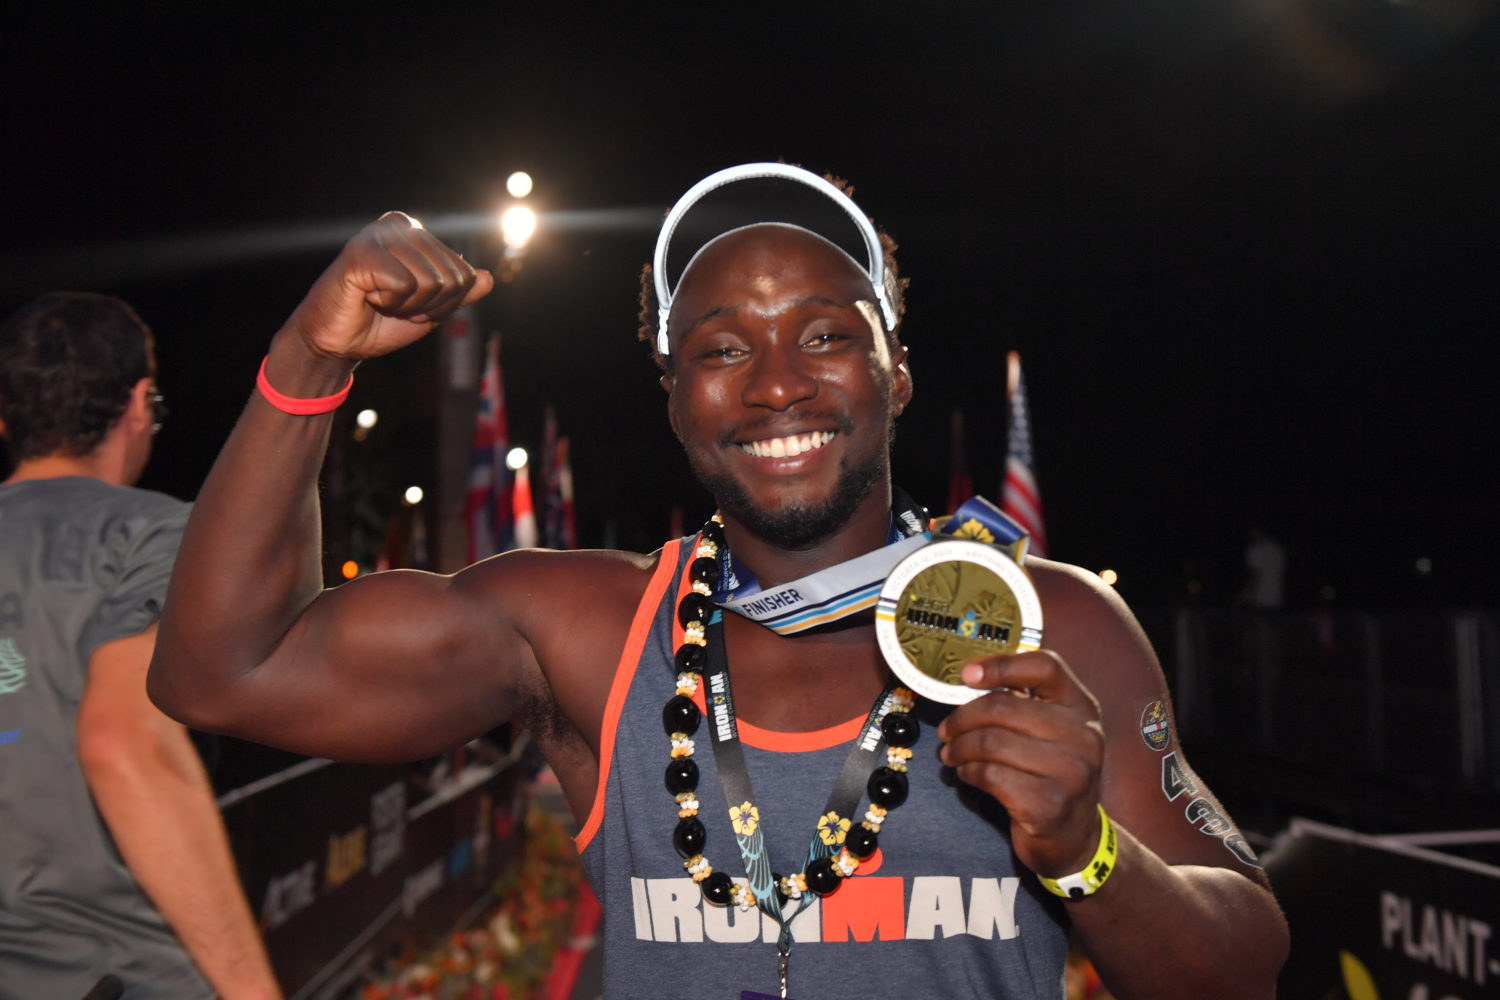 Bilateral Above-knee Amputee Sets Precedent Finishing the IRONMAN World Championship